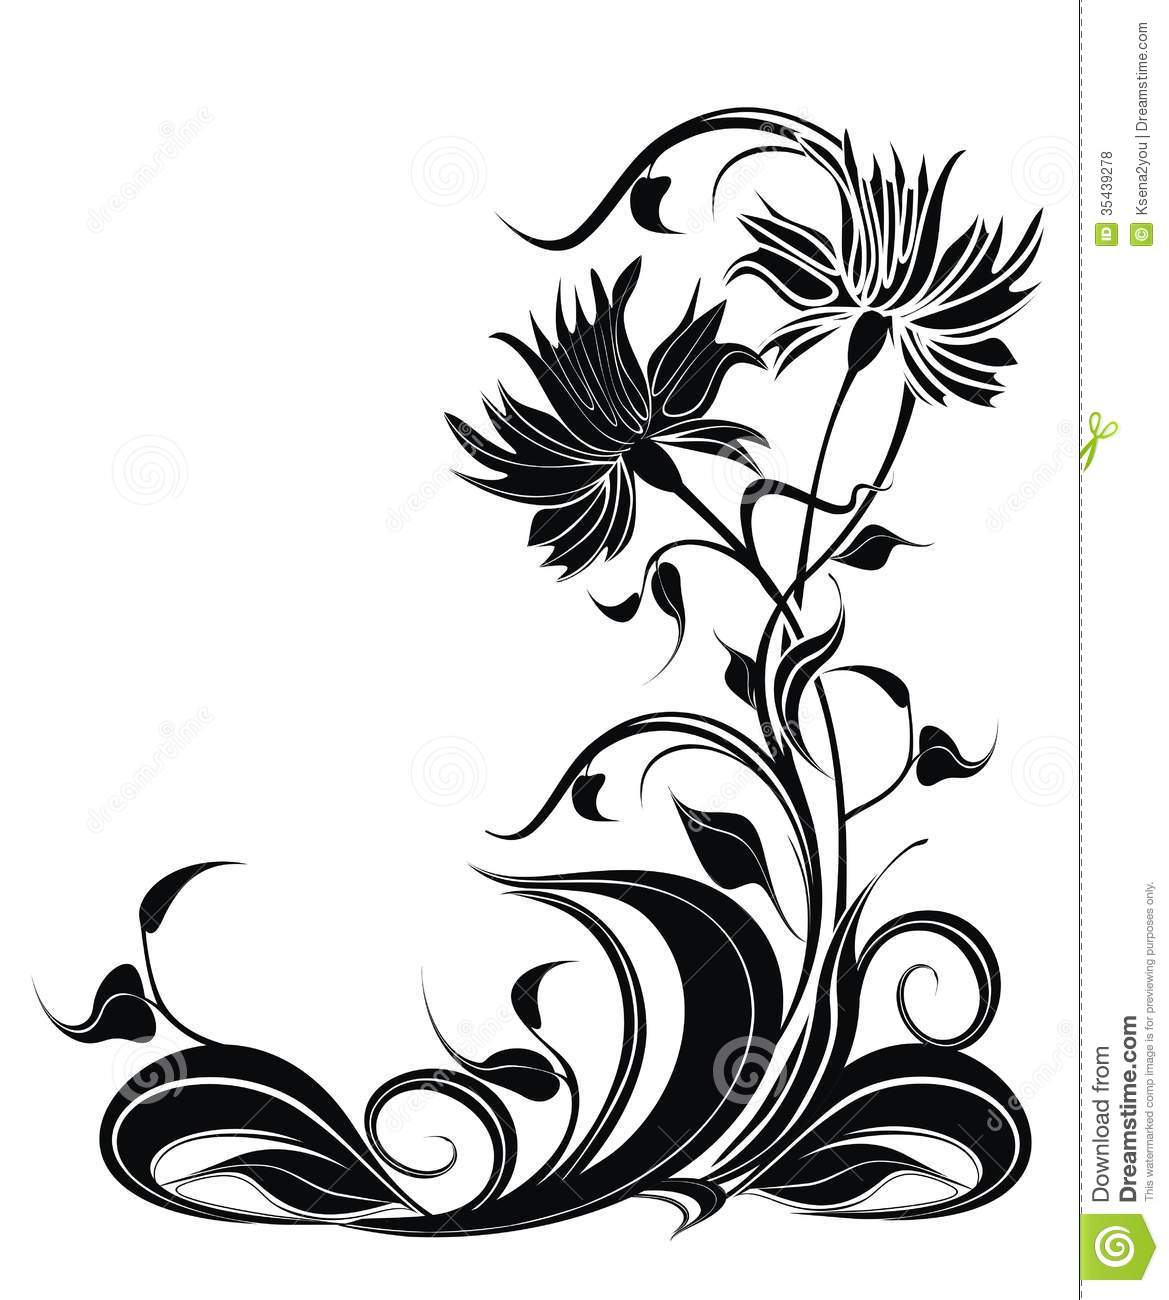 Vector Background With Flowers In Grunge Style Royalty